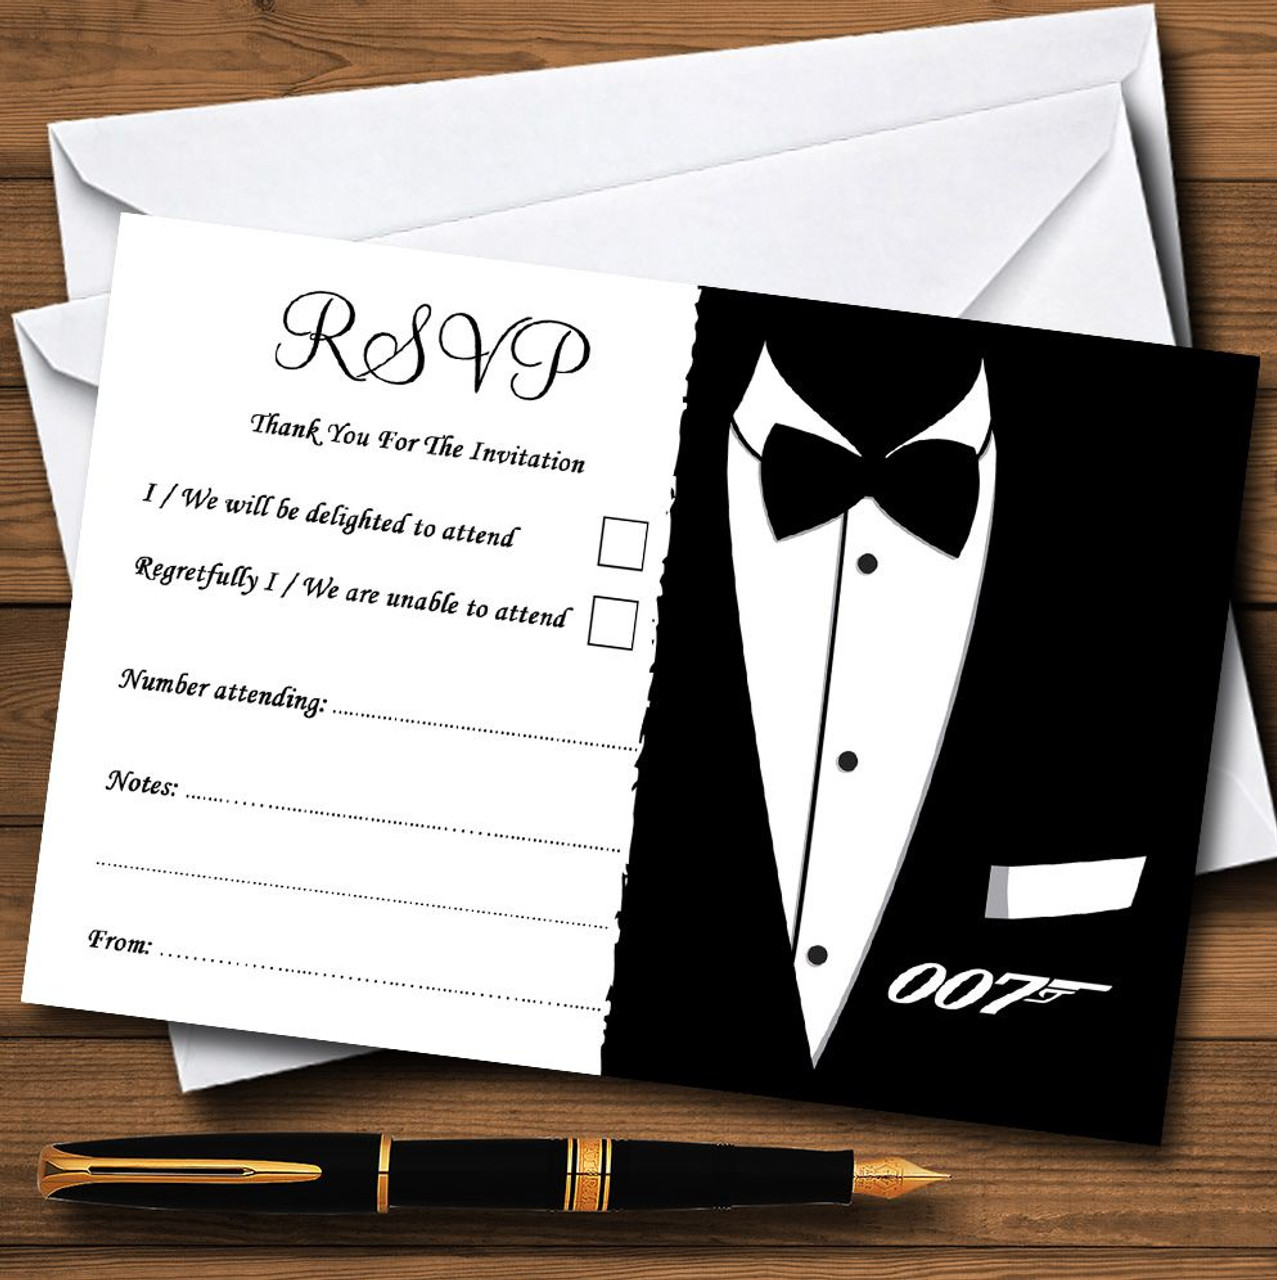 James bond personalised rsvp cards the card zoo james bond personalised rsvp cards stopboris Images